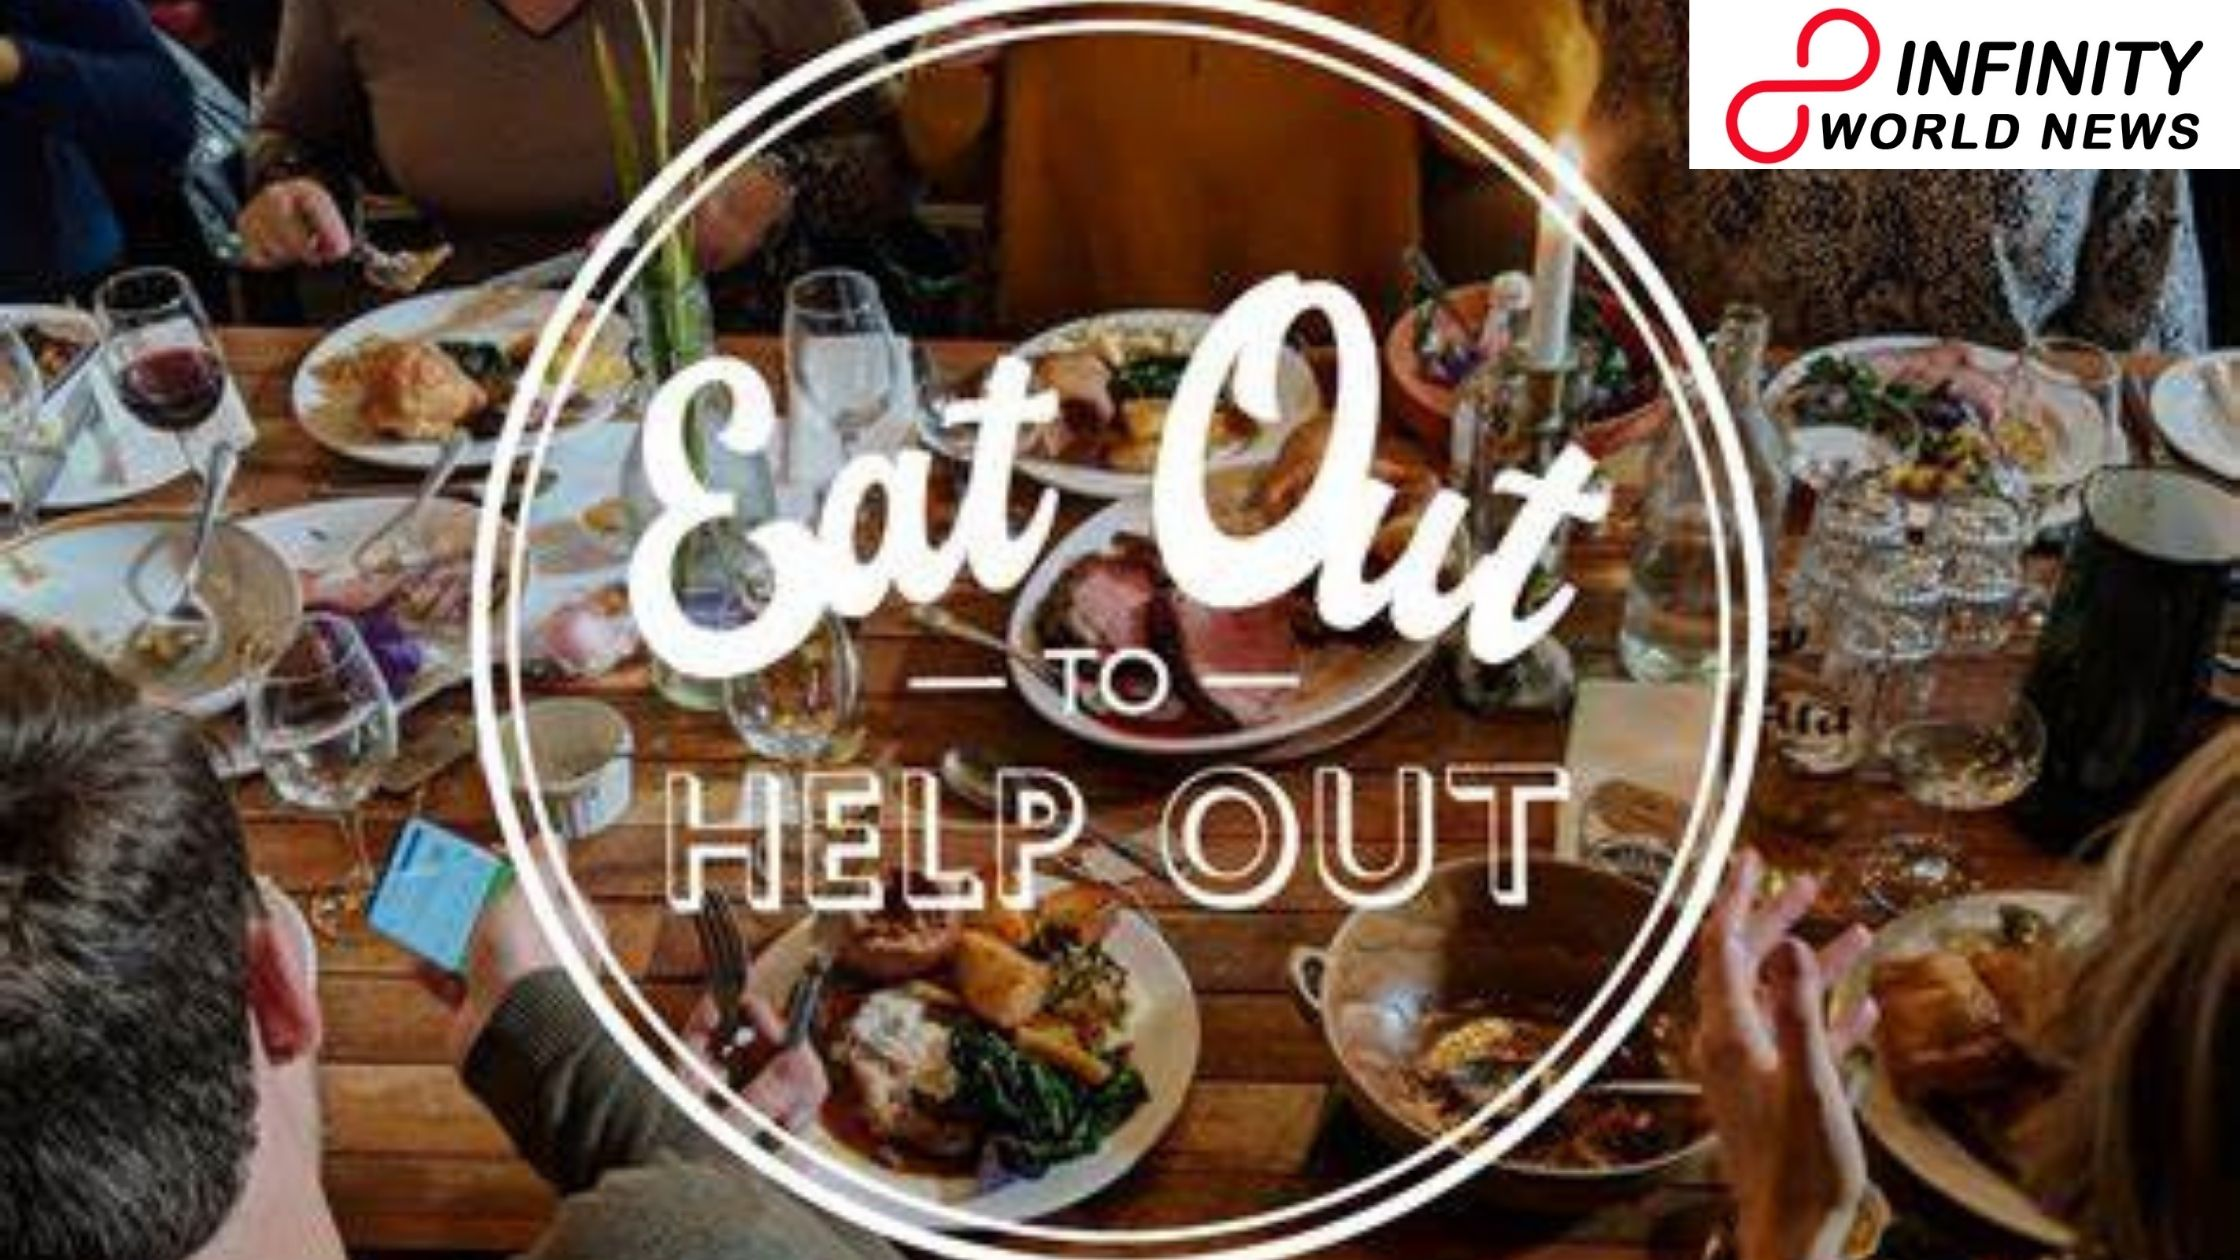 'Eat out to help out' offer added to UK 2nd Covid wave - study